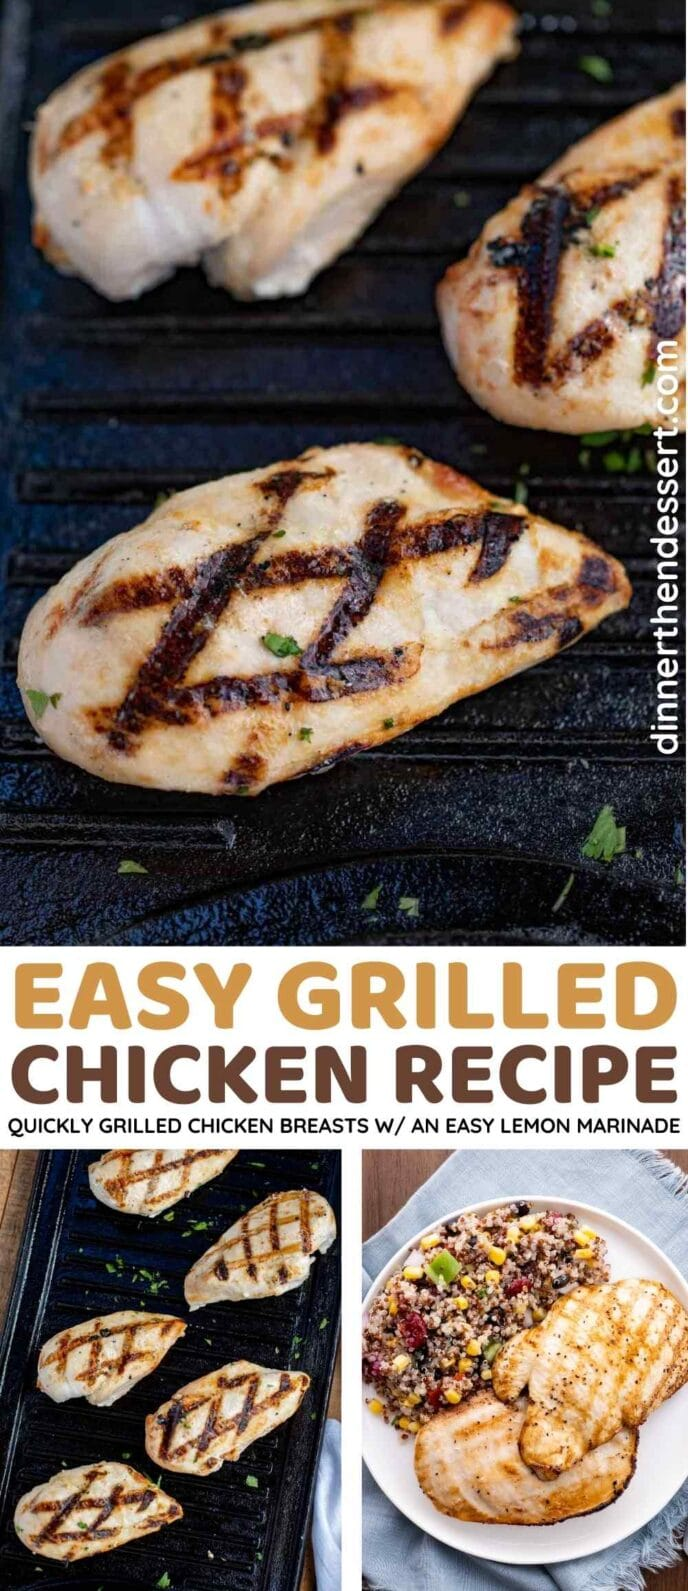 Easy Grilled Chicken Recipe Collage